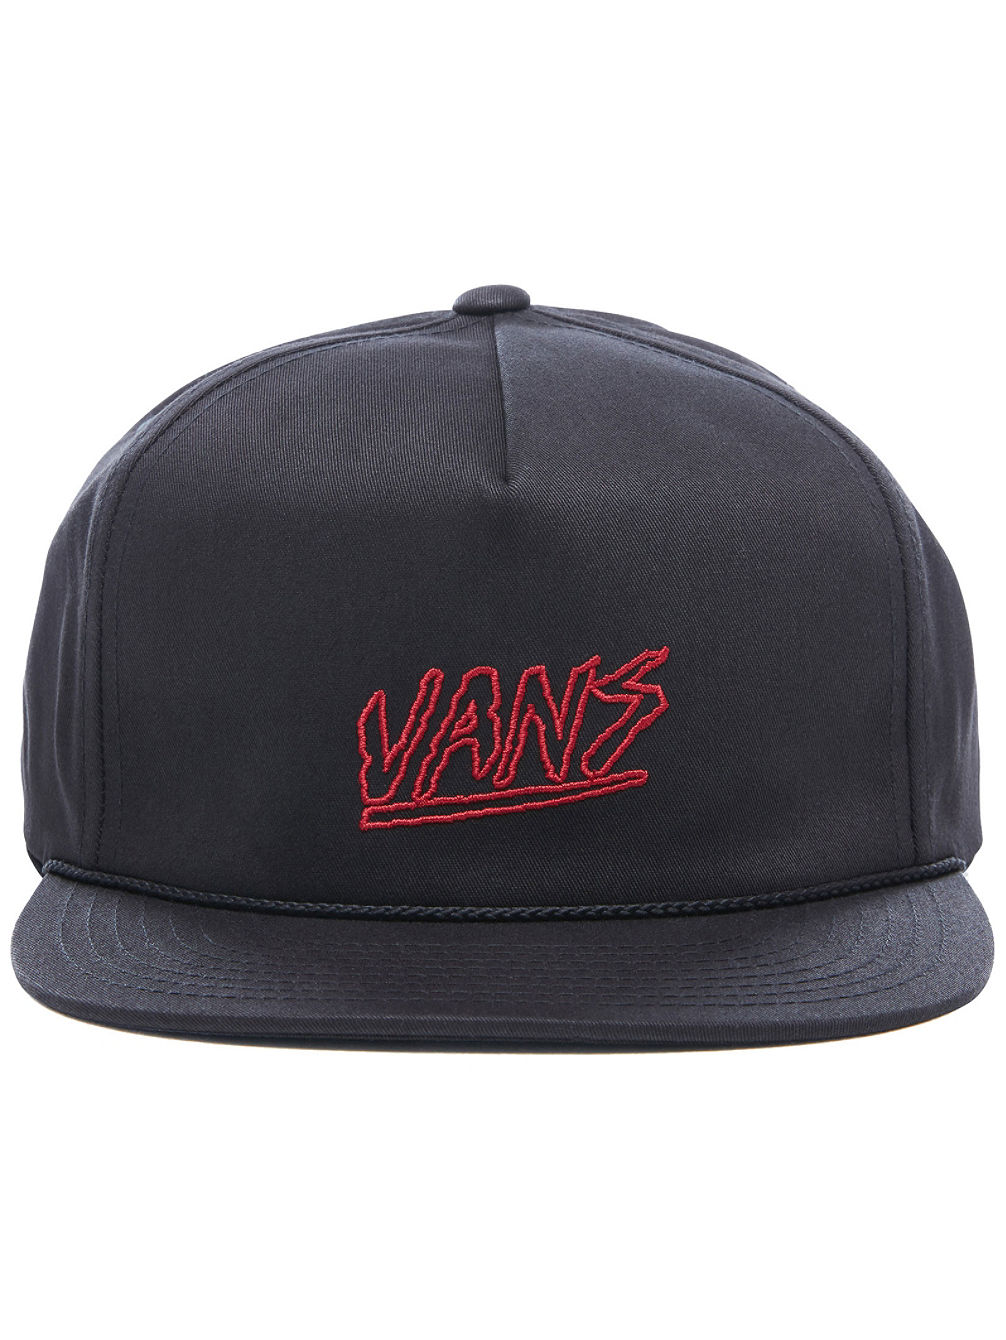 Radness Shallow Unstructured Cap